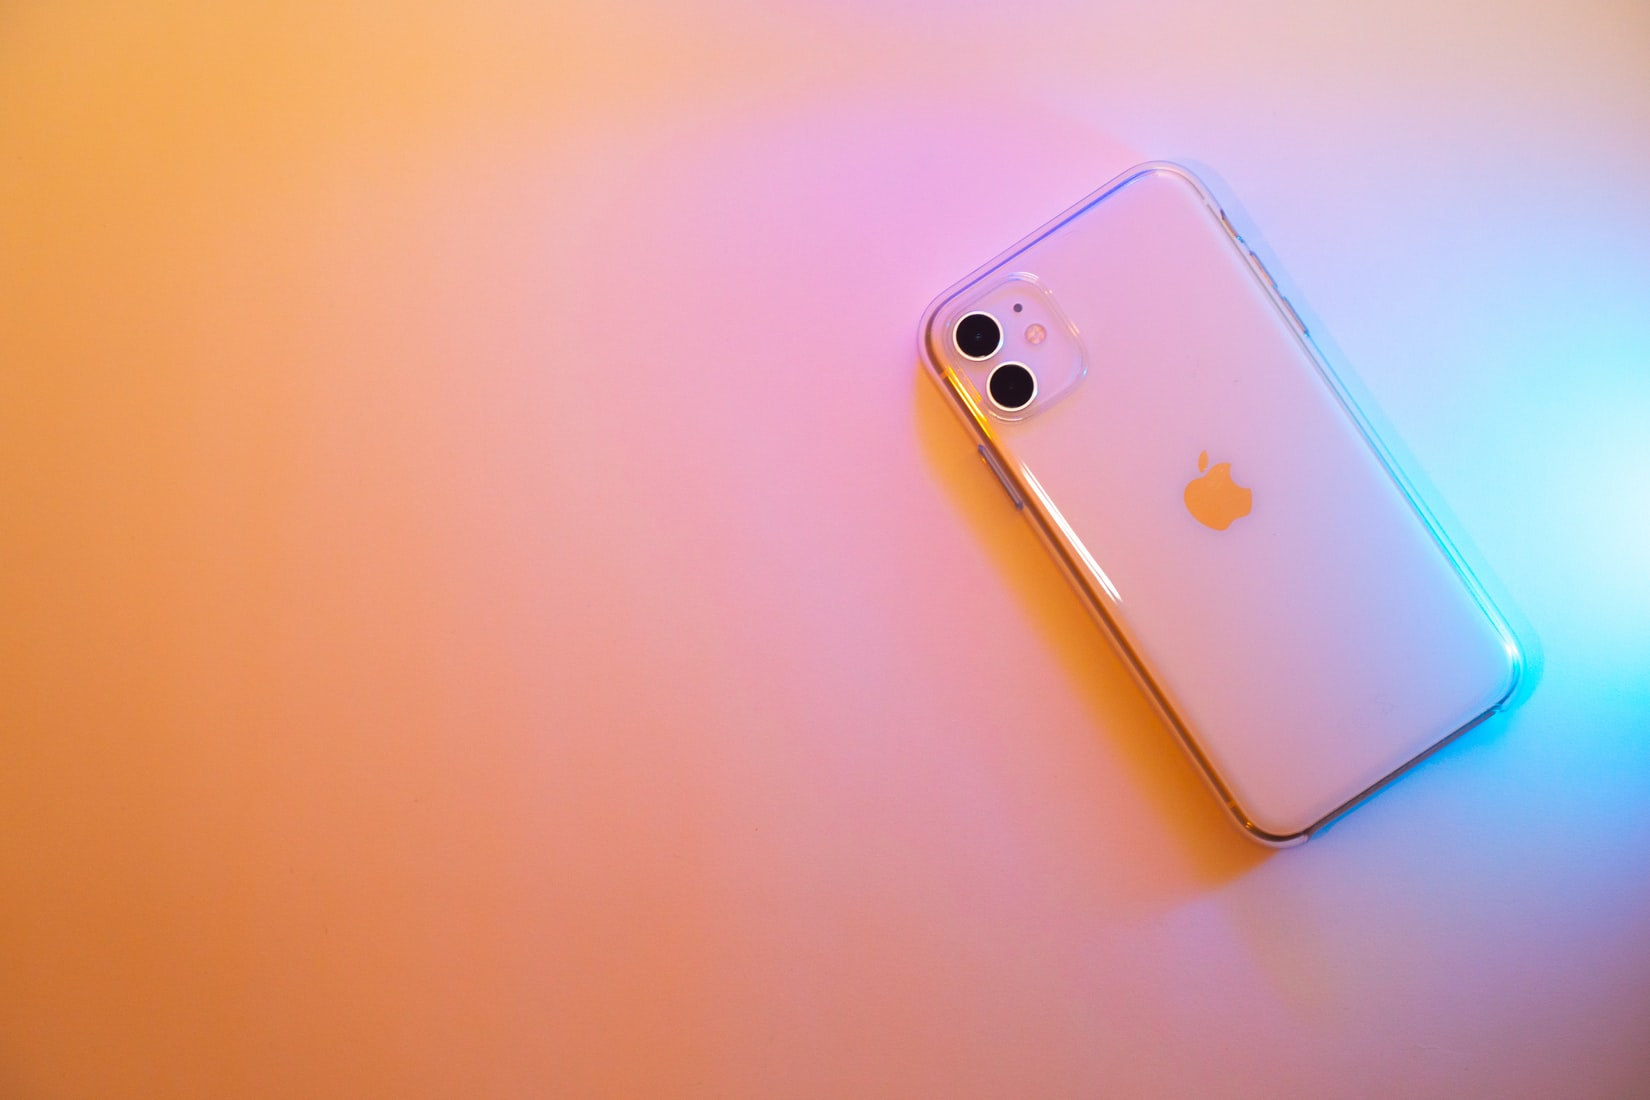 Know the differences between iPhone X and the iPhone 11